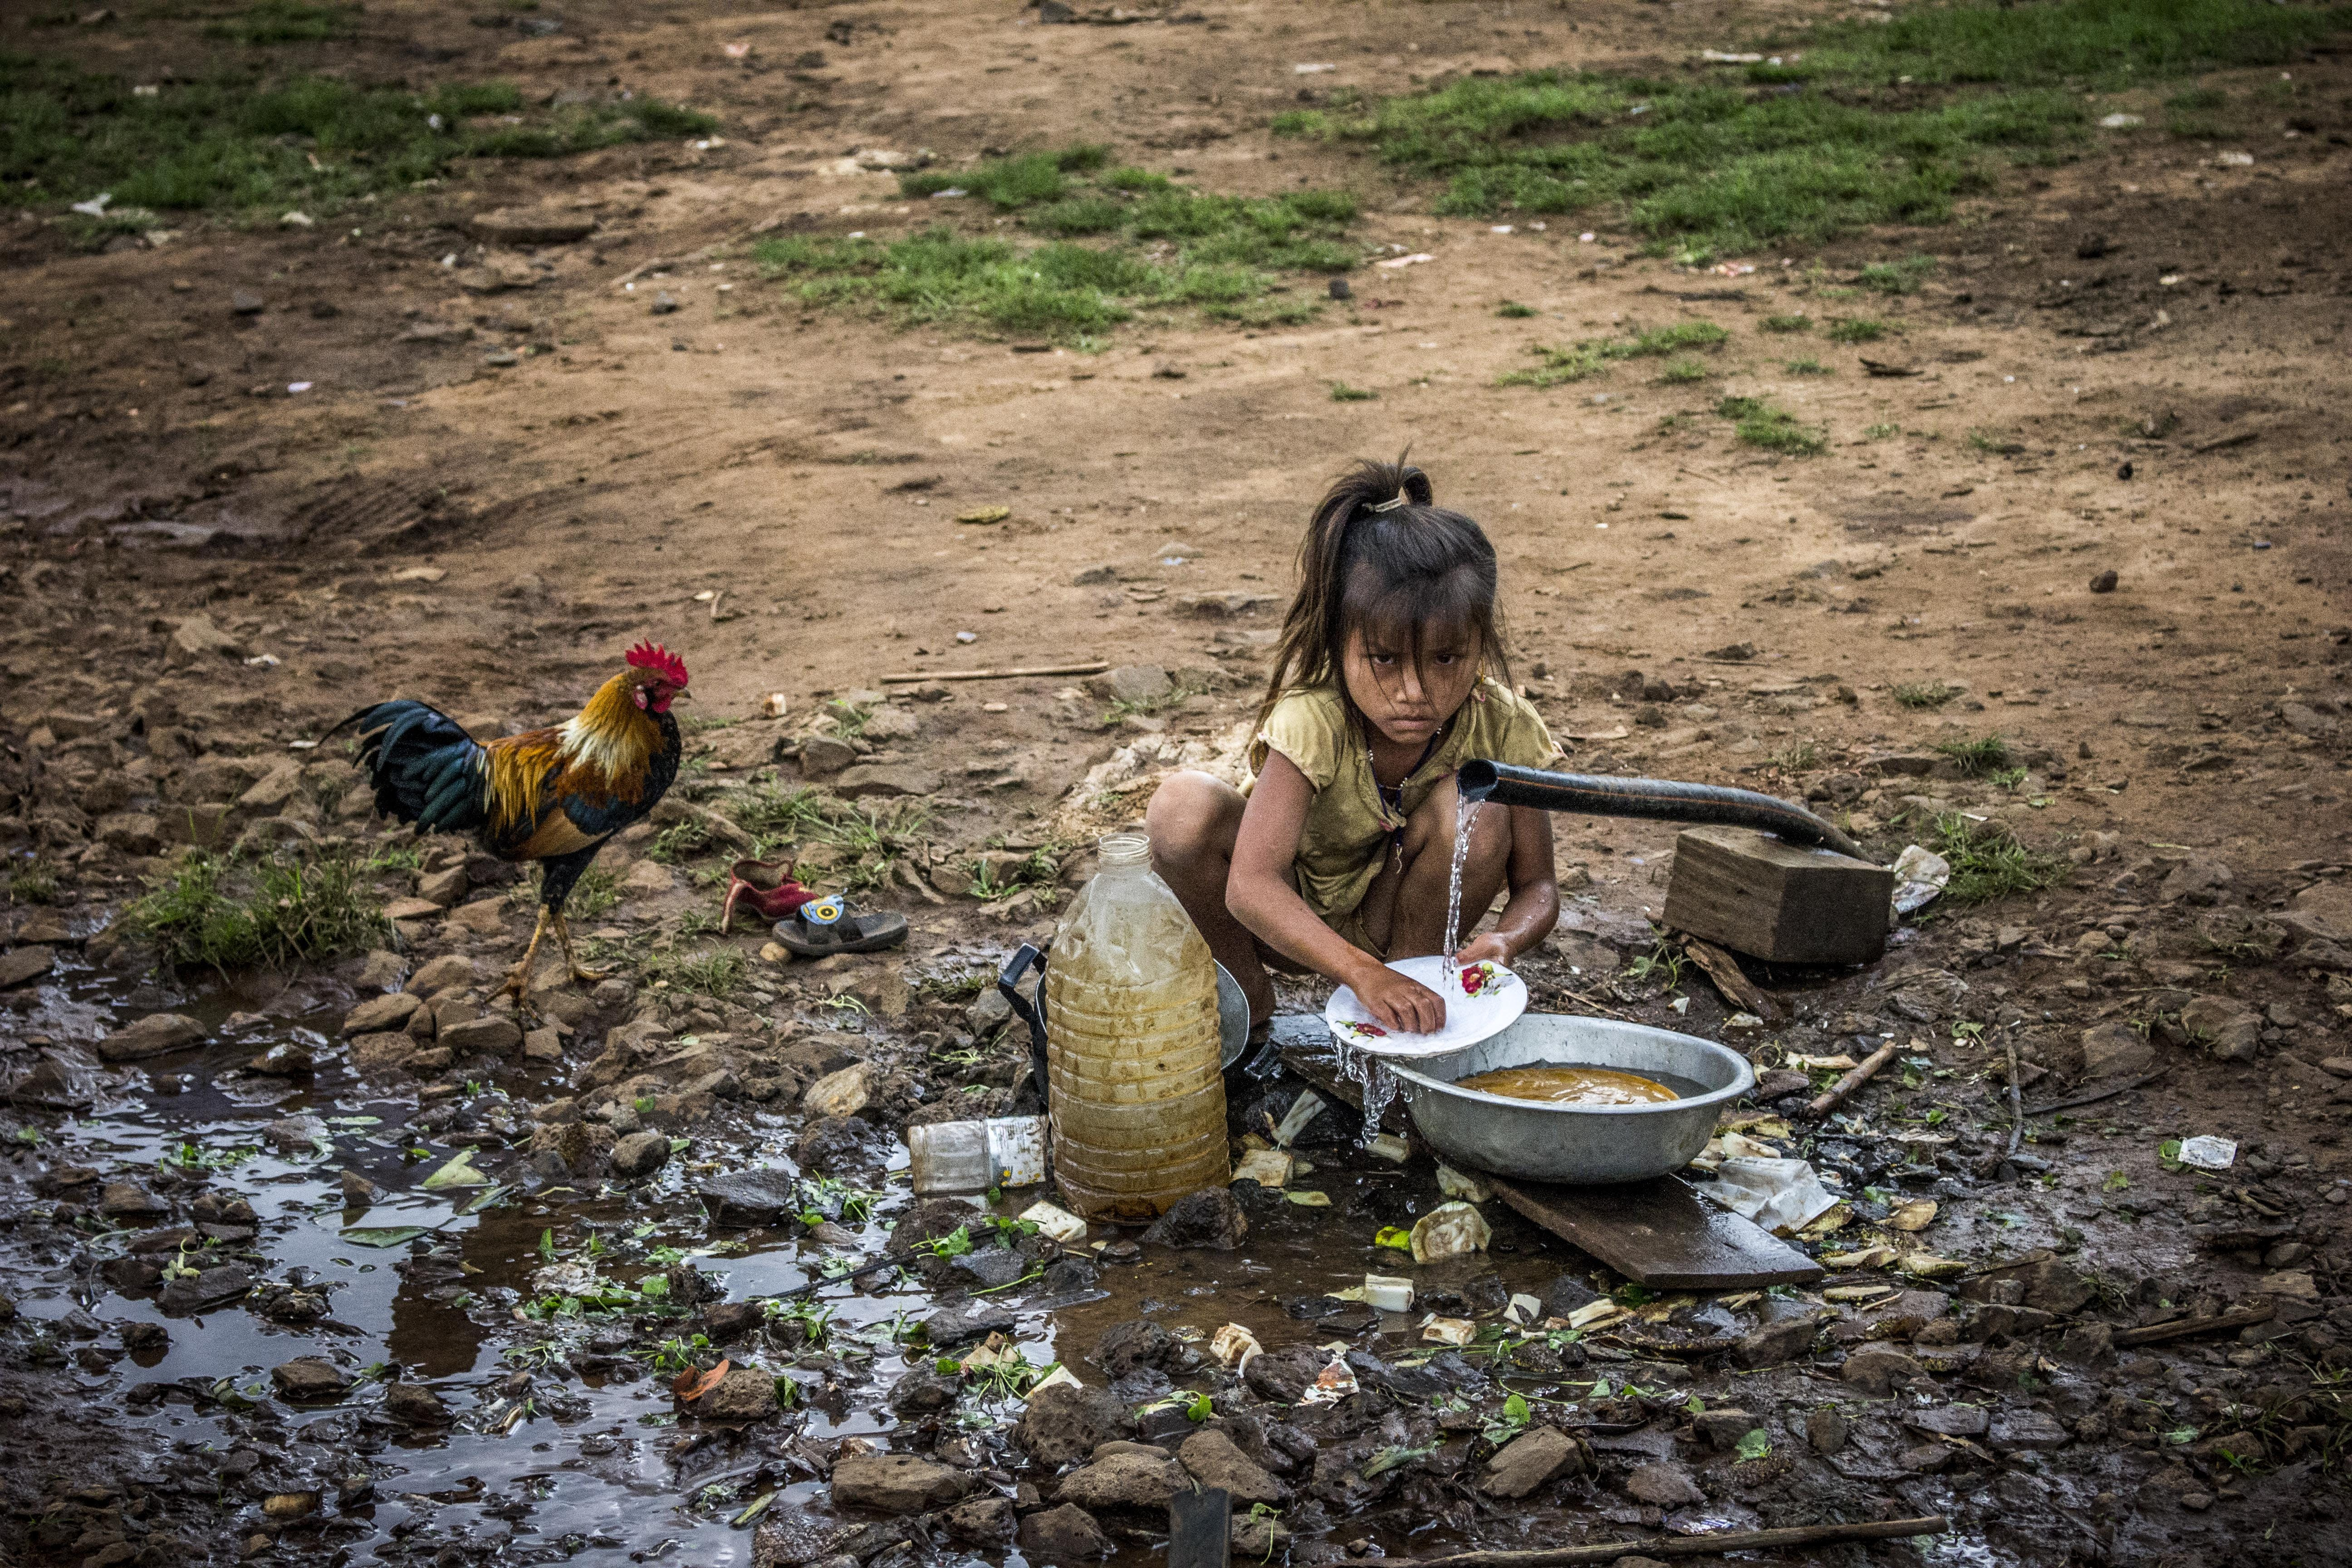 Girl Washing Dish Near Water Flowing Pipe Beside Brown Rooster